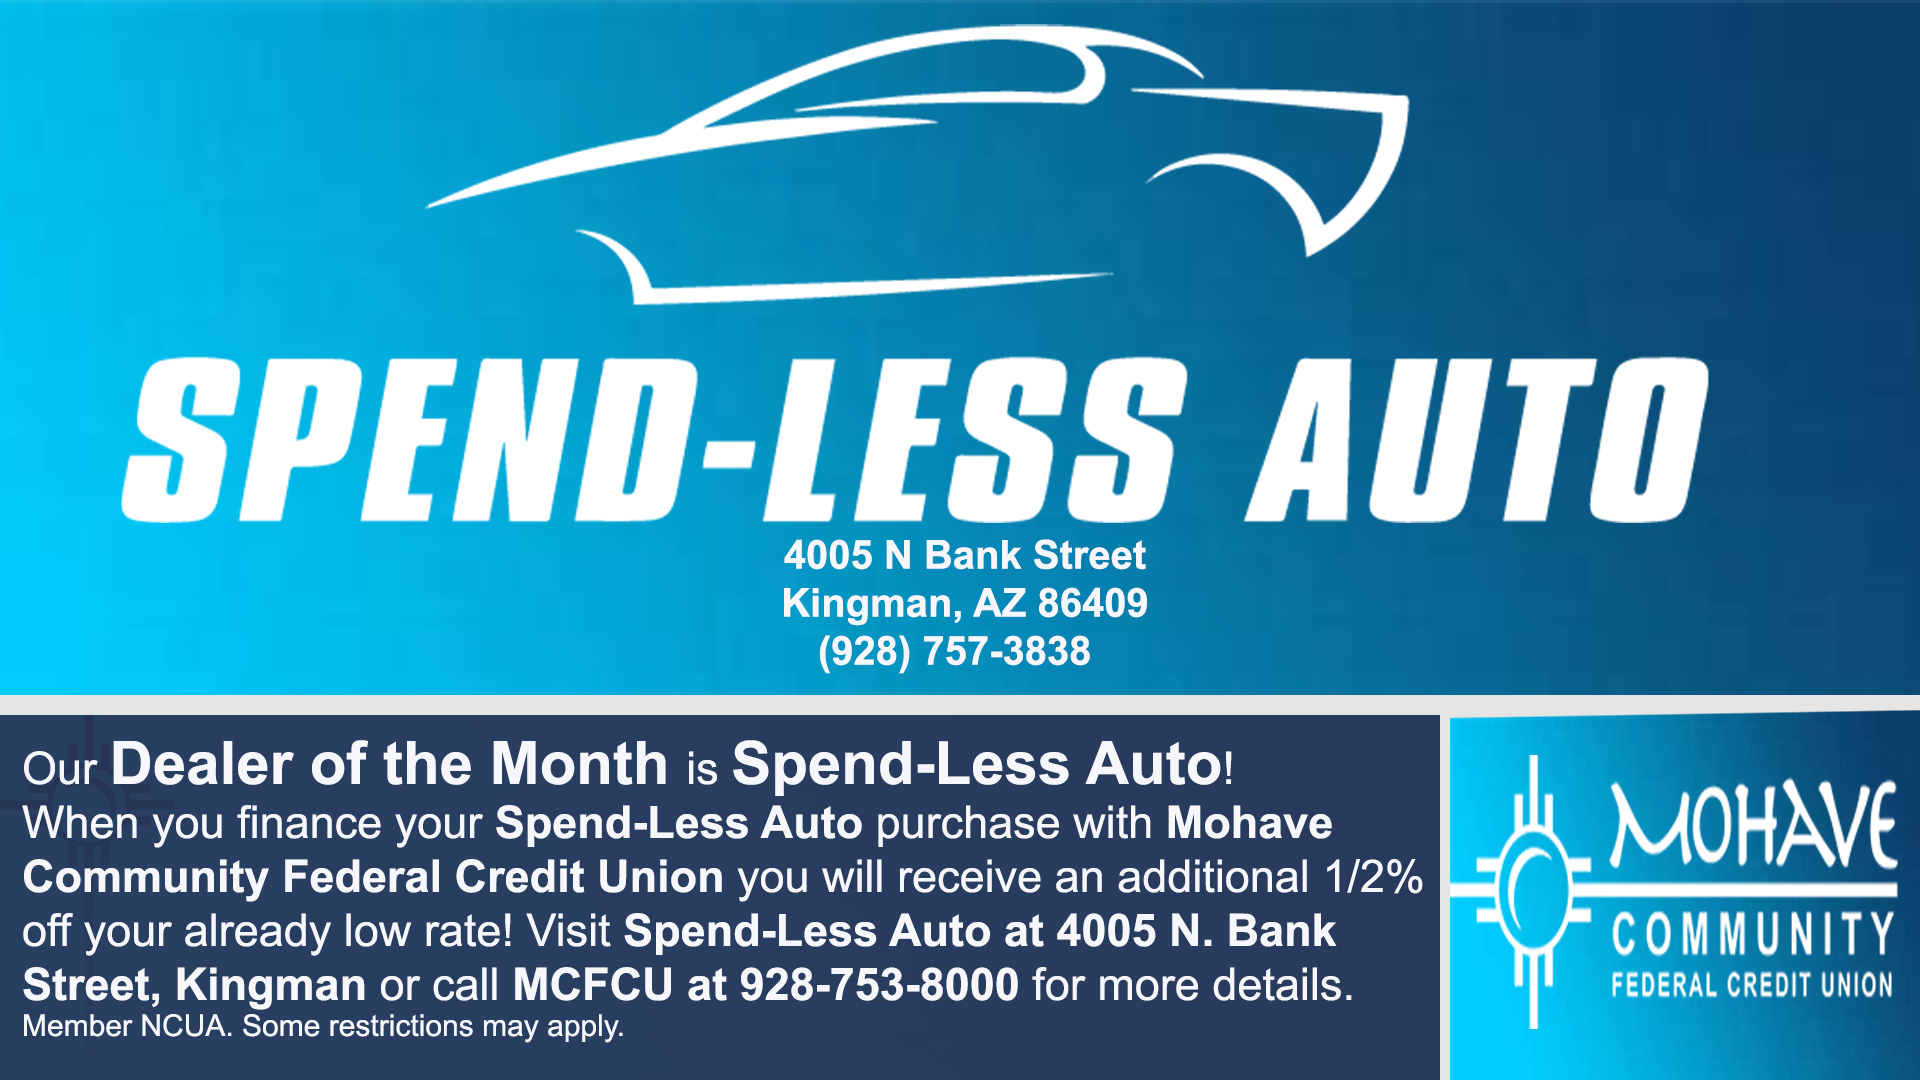 Spendless Auto is our Auto Dealer of the Month of July! When you finance your Spendless Auto purchase with MCFCU, you will receive an additional 1% off your already low APR(Annual Percentage Rate). All loans and interest rates are subject to credit approval. Some restrictions do apply. Contact us today at 928-753-8000 for more details.